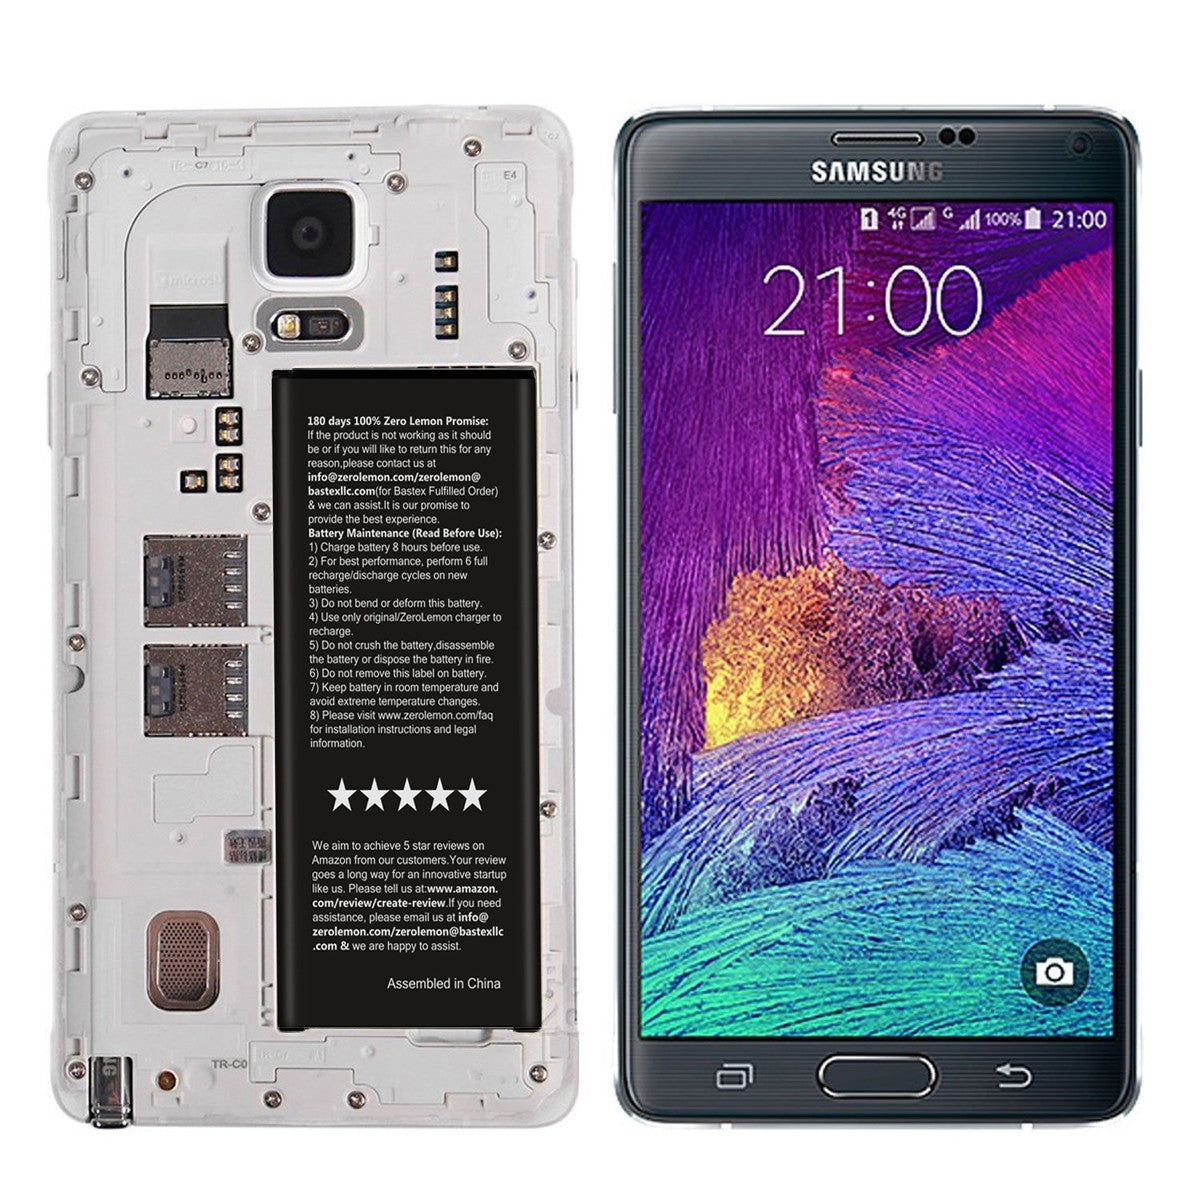 Galaxy Note 4 3220mAh Replacement Battery[2 Pack] [Shipping to US Only]